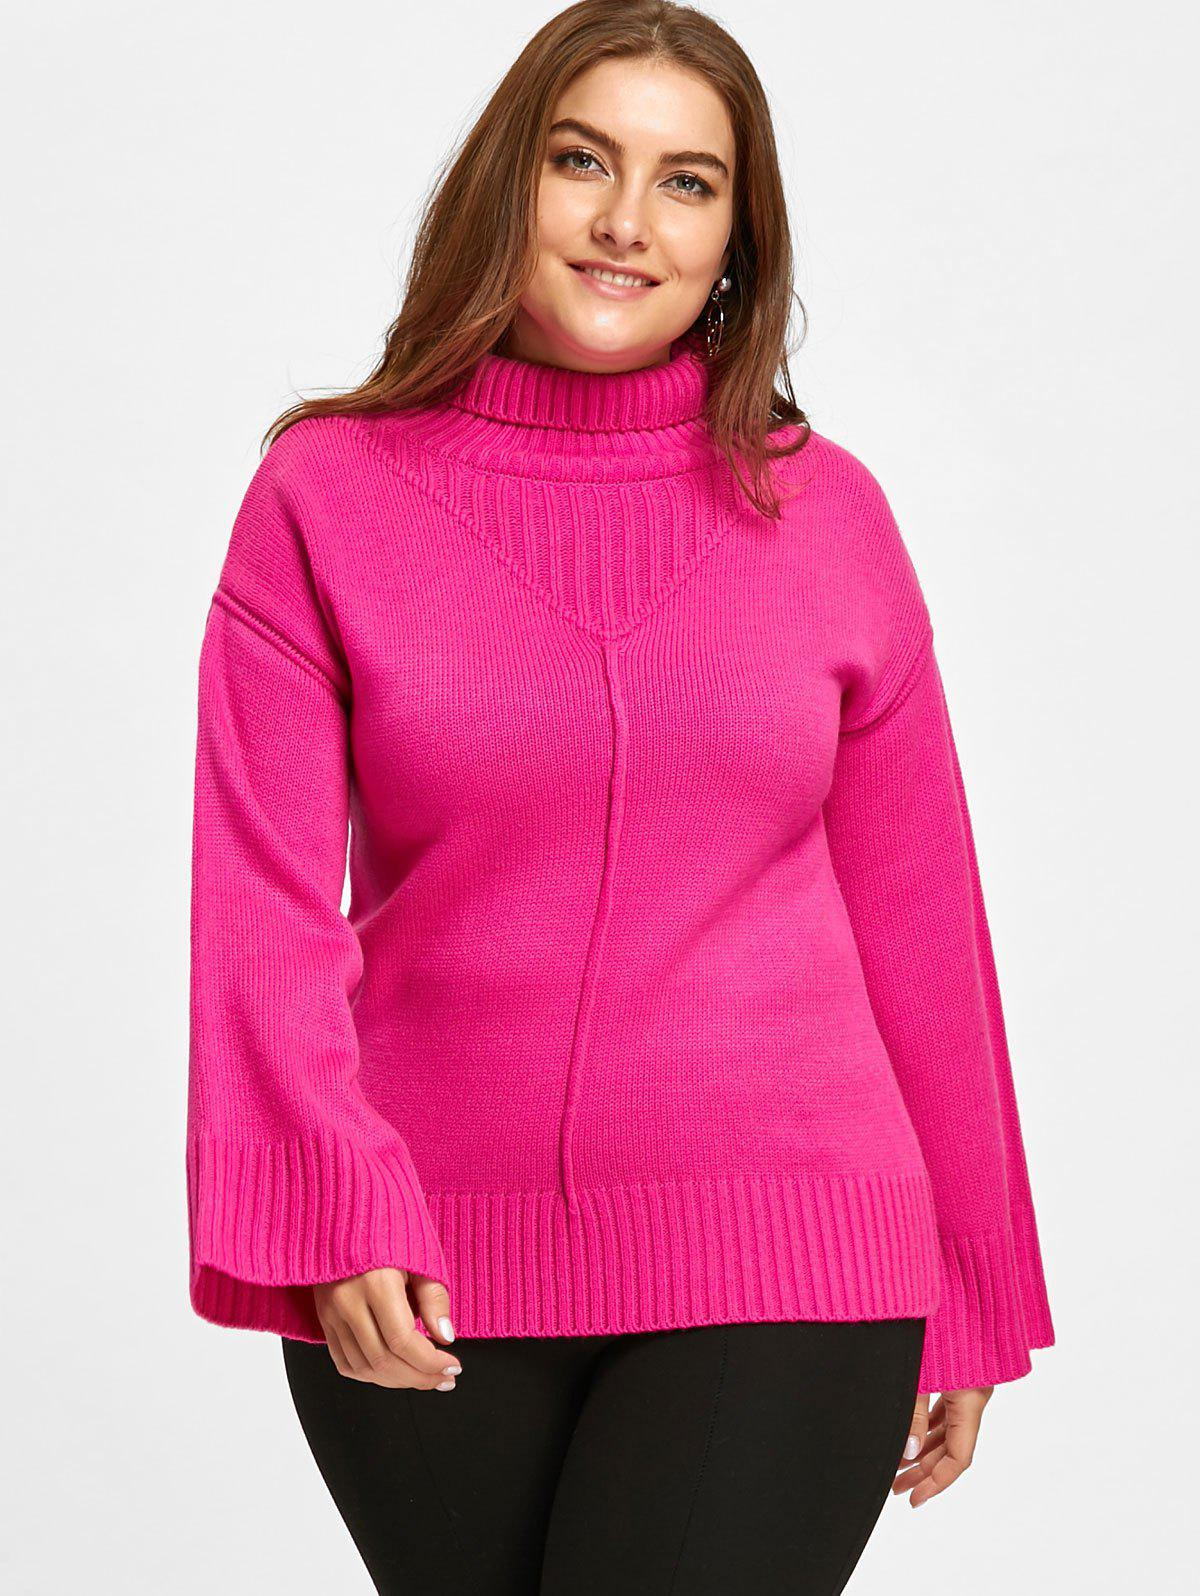 Plus Size Loose Knit Turtleneck Tunic Sweater